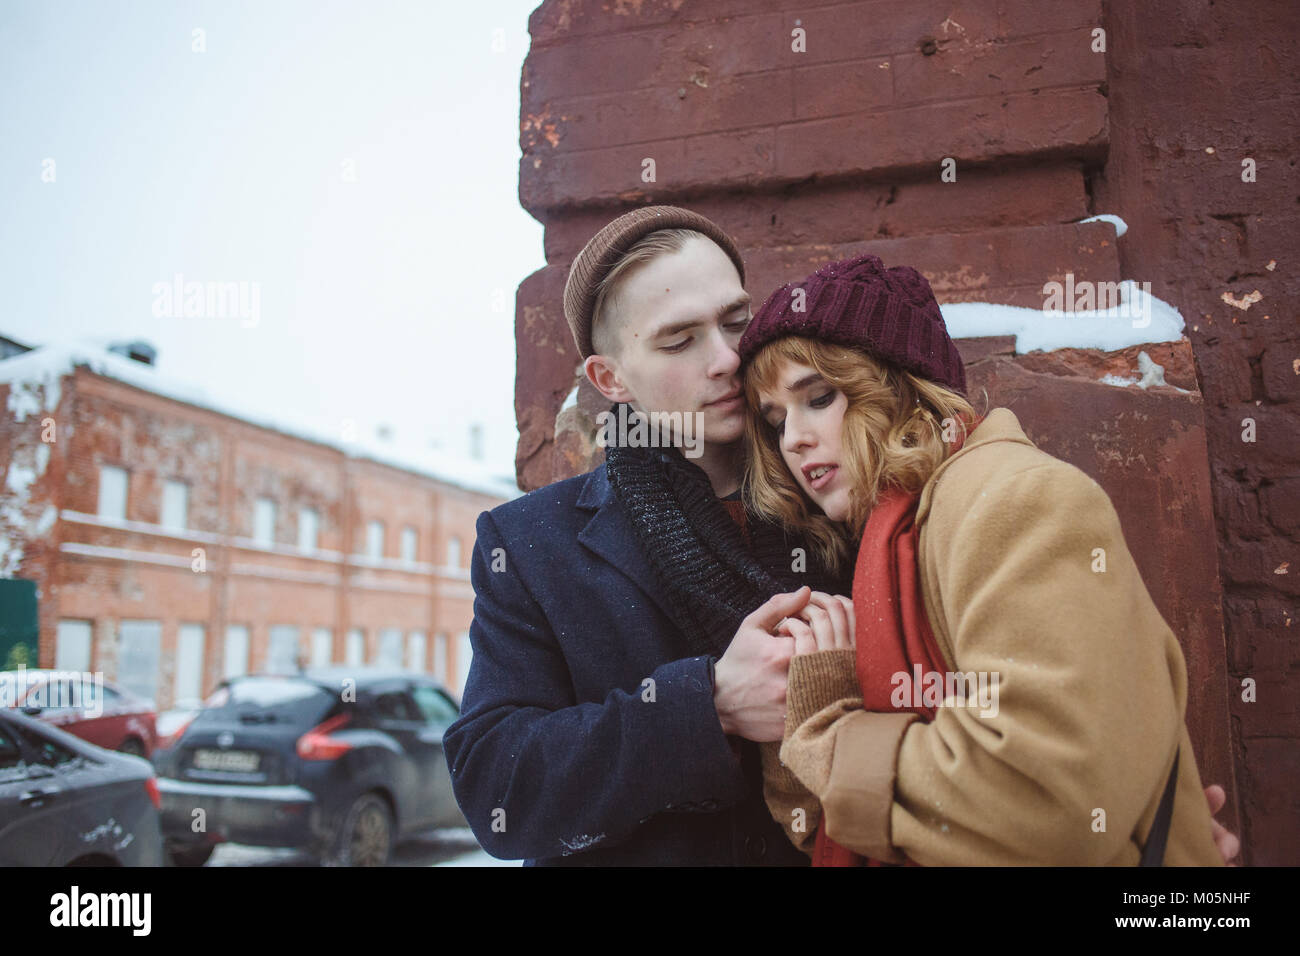 Young man and woman embracing près de brick coin de bâtiment. Rue d'hiver. La vie privée dans Photo Stock